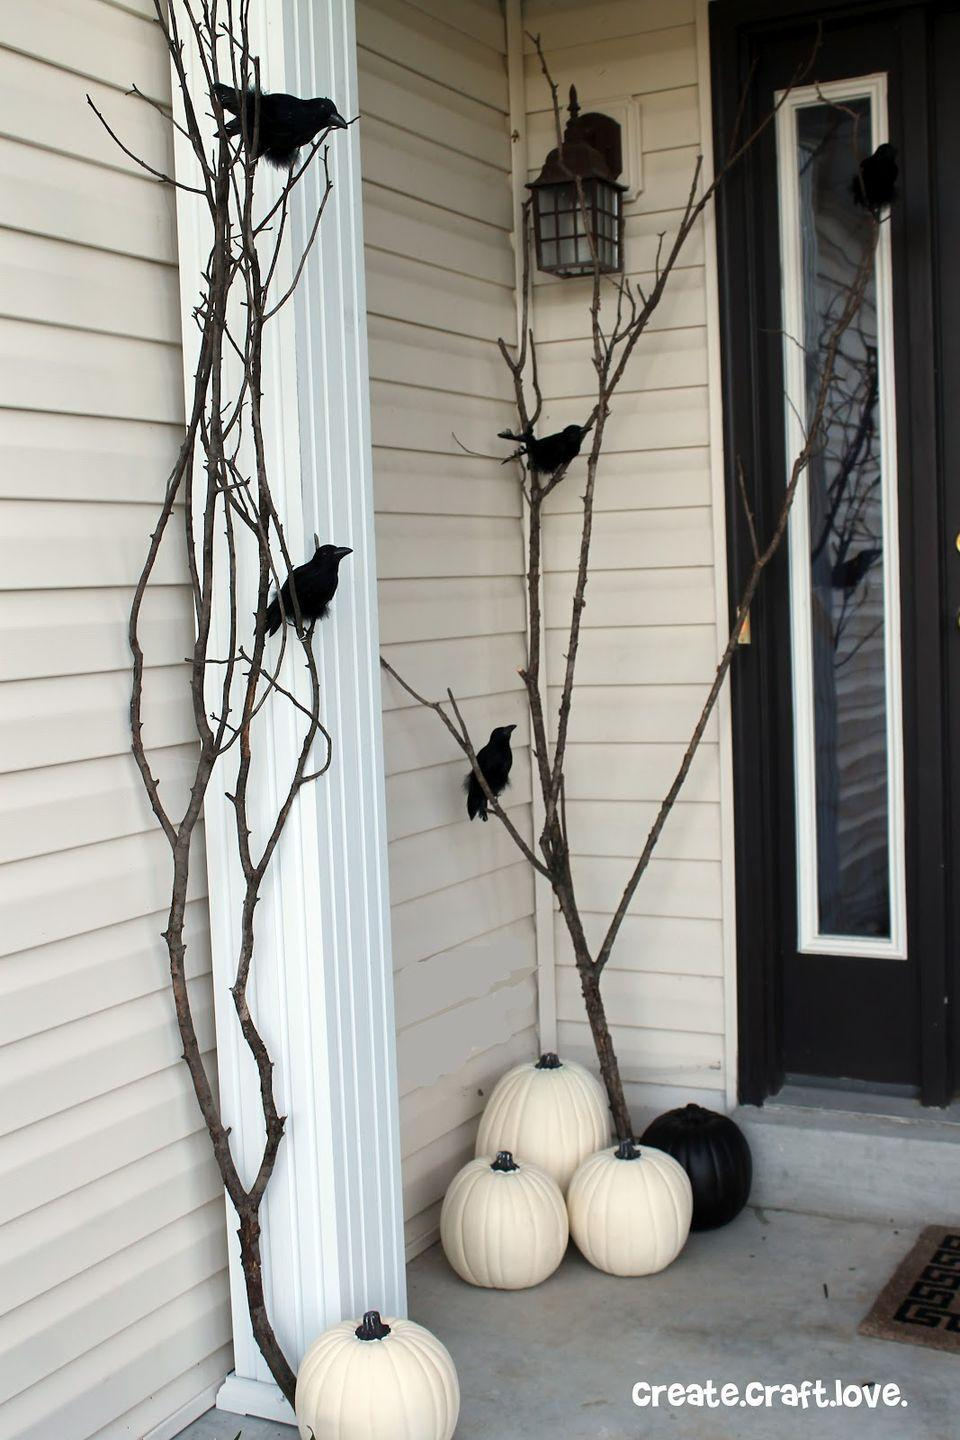 """<p>Create this ultra spooky setup with long branches and tied-on ravens. Though fake, they look almost real enough to terrify the neighbors!<br></p><p><strong>Get the tutorial at <a href=""""http://www.createcraftlove.com/raven-inspired-halloween-porch/"""" rel=""""nofollow noopener"""" target=""""_blank"""" data-ylk=""""slk:Create Craft Love"""" class=""""link rapid-noclick-resp"""">Create Craft Love</a>.</strong> </p>"""